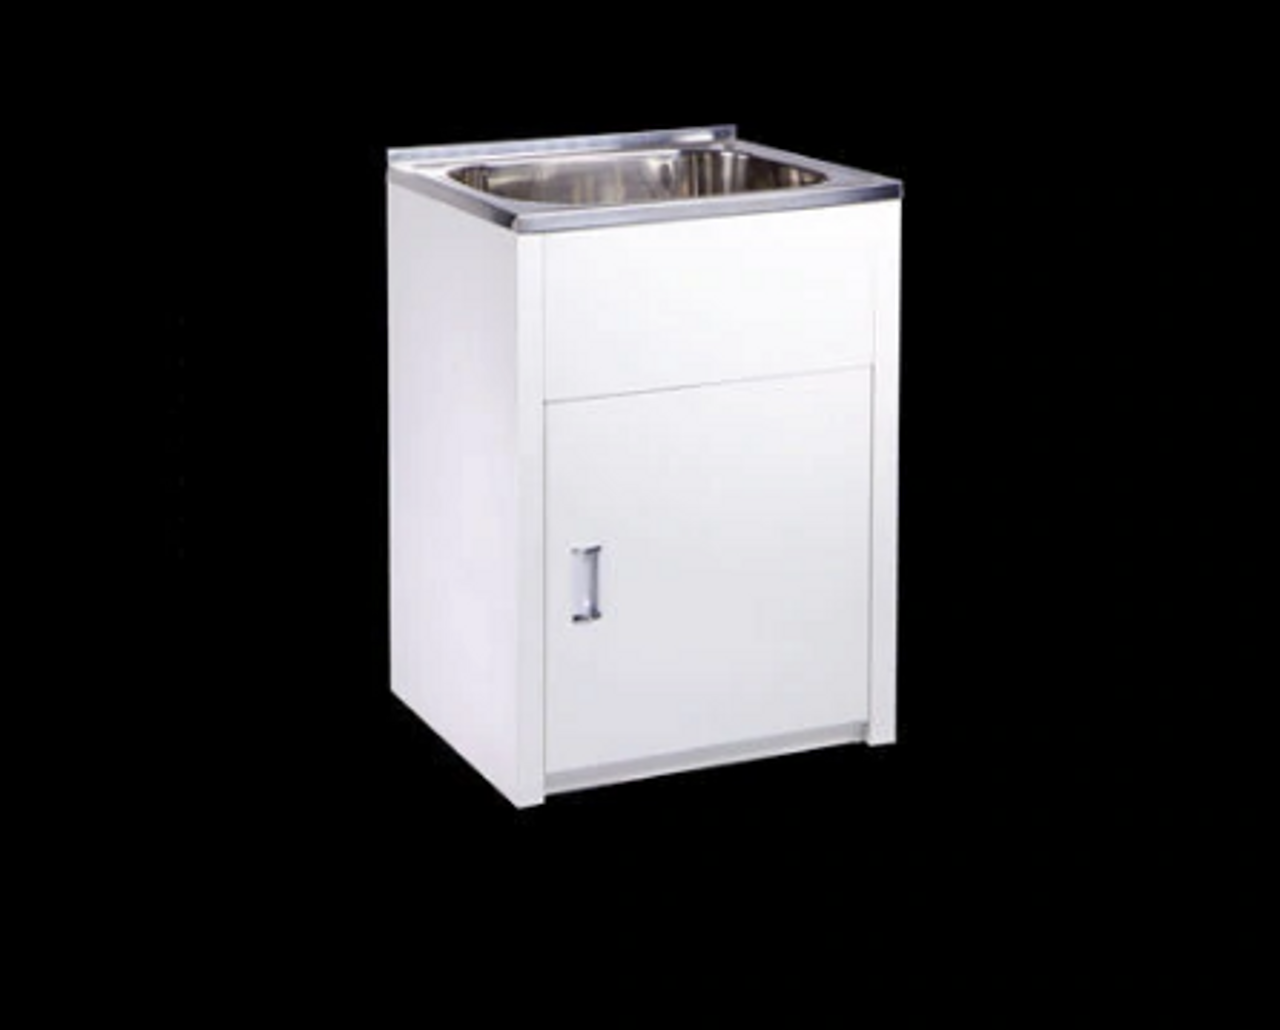 project 45 liter laundry sink tub cabinet sink cabinet